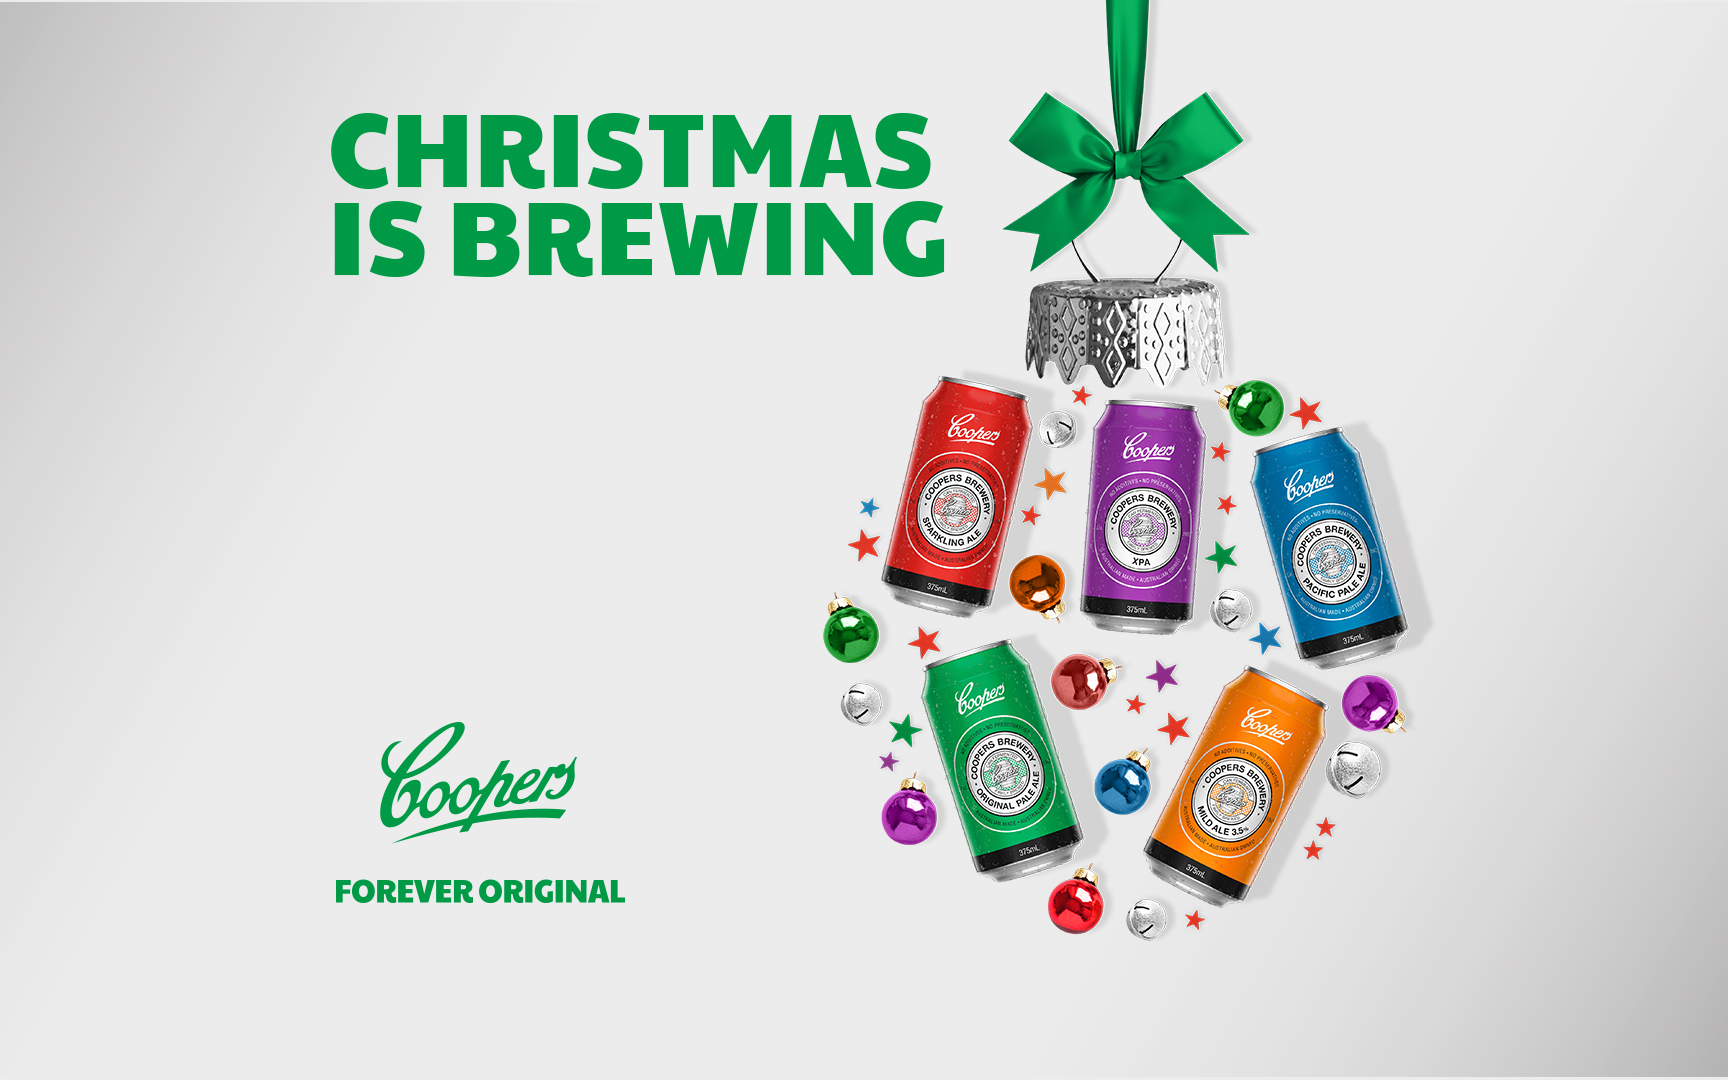 Coopers 6 Beers A-Brewing Campaign Key Visual